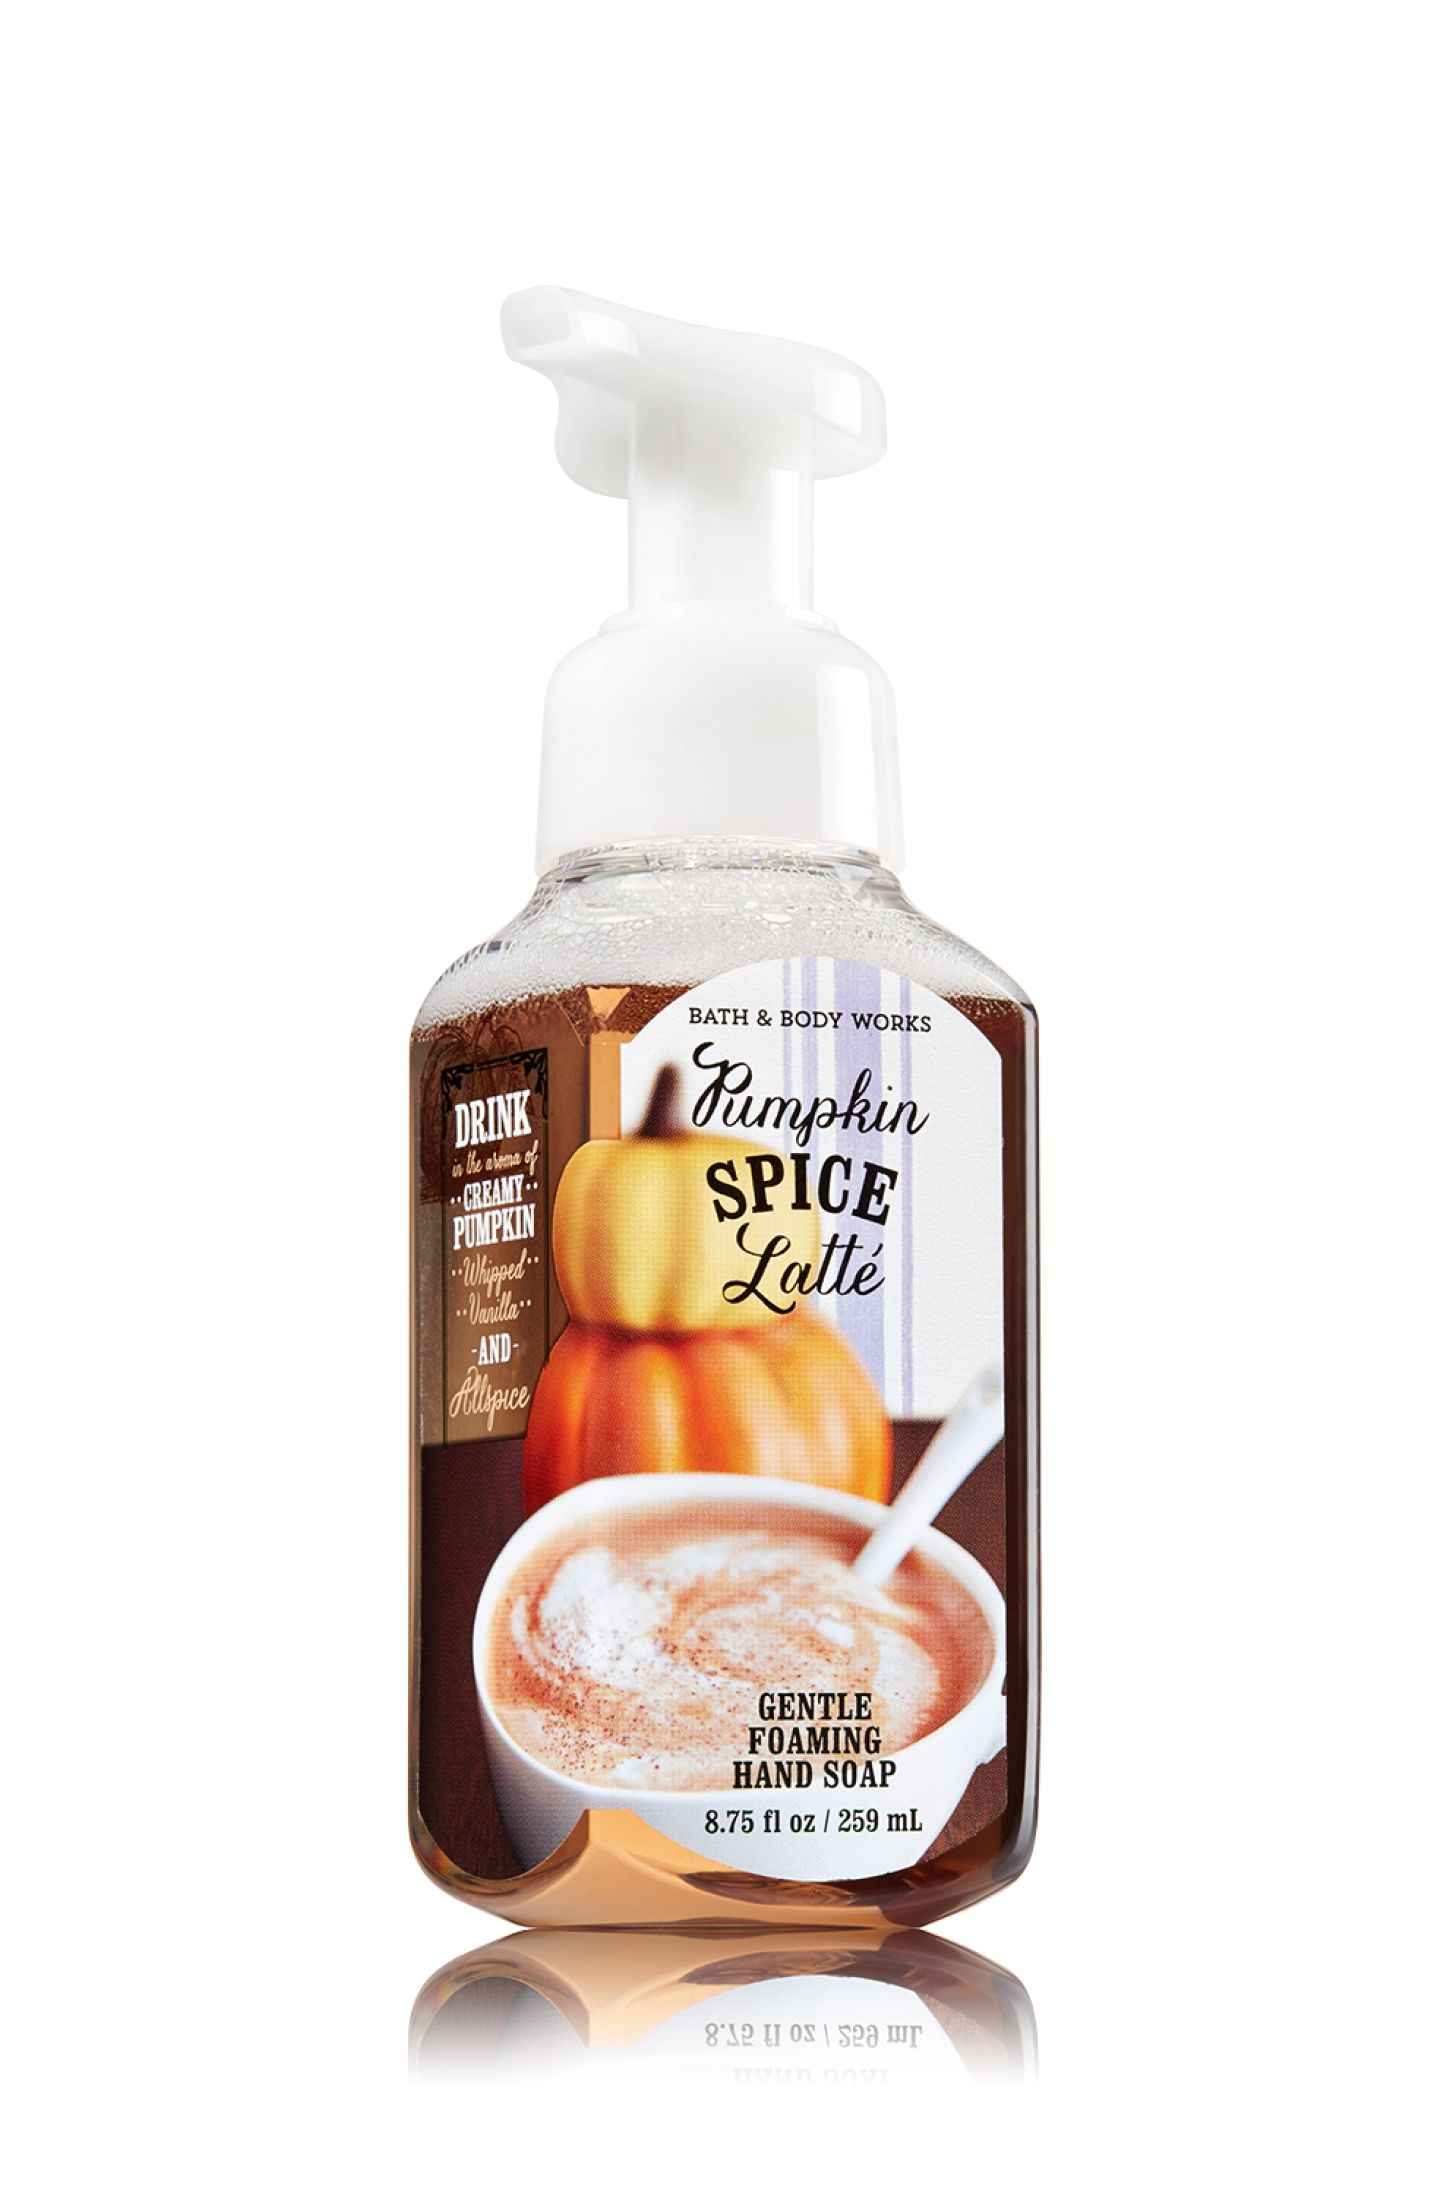 Pumpkin Spice Latte Gentle Foaming Hand Soap Soap Sanitizer